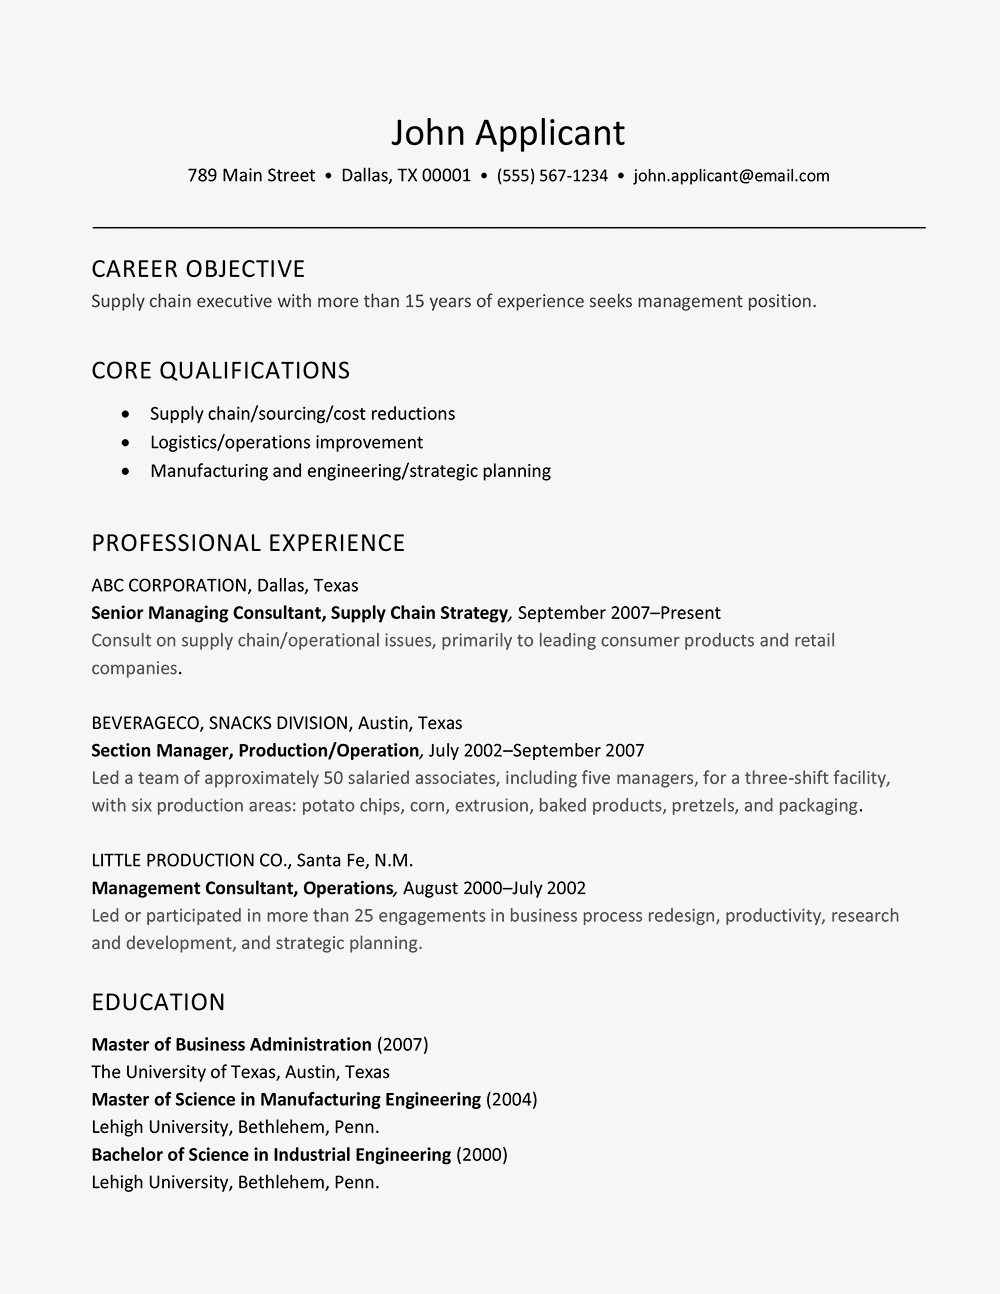 concise cv the difference between a resume and a curriculum vitae cv